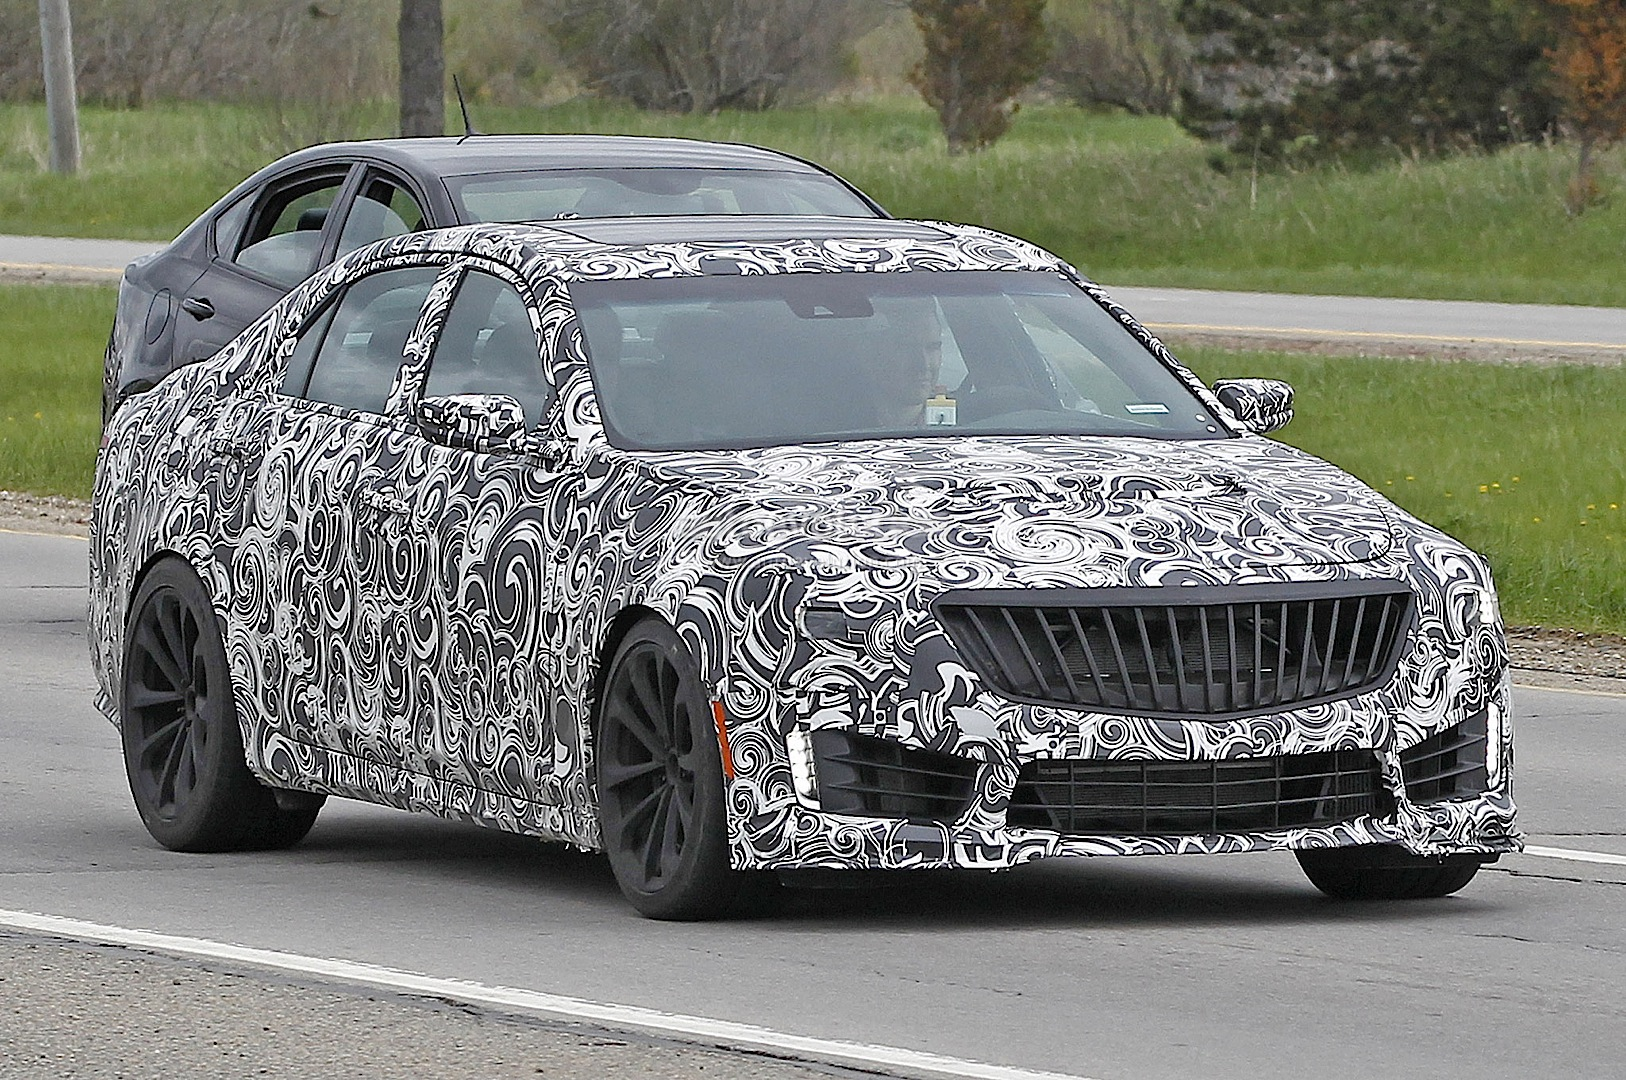 Cadillac Cts 3.6 >> 2016 Cadillac CTS-V Spied, Might Get Twin-Turbo V8